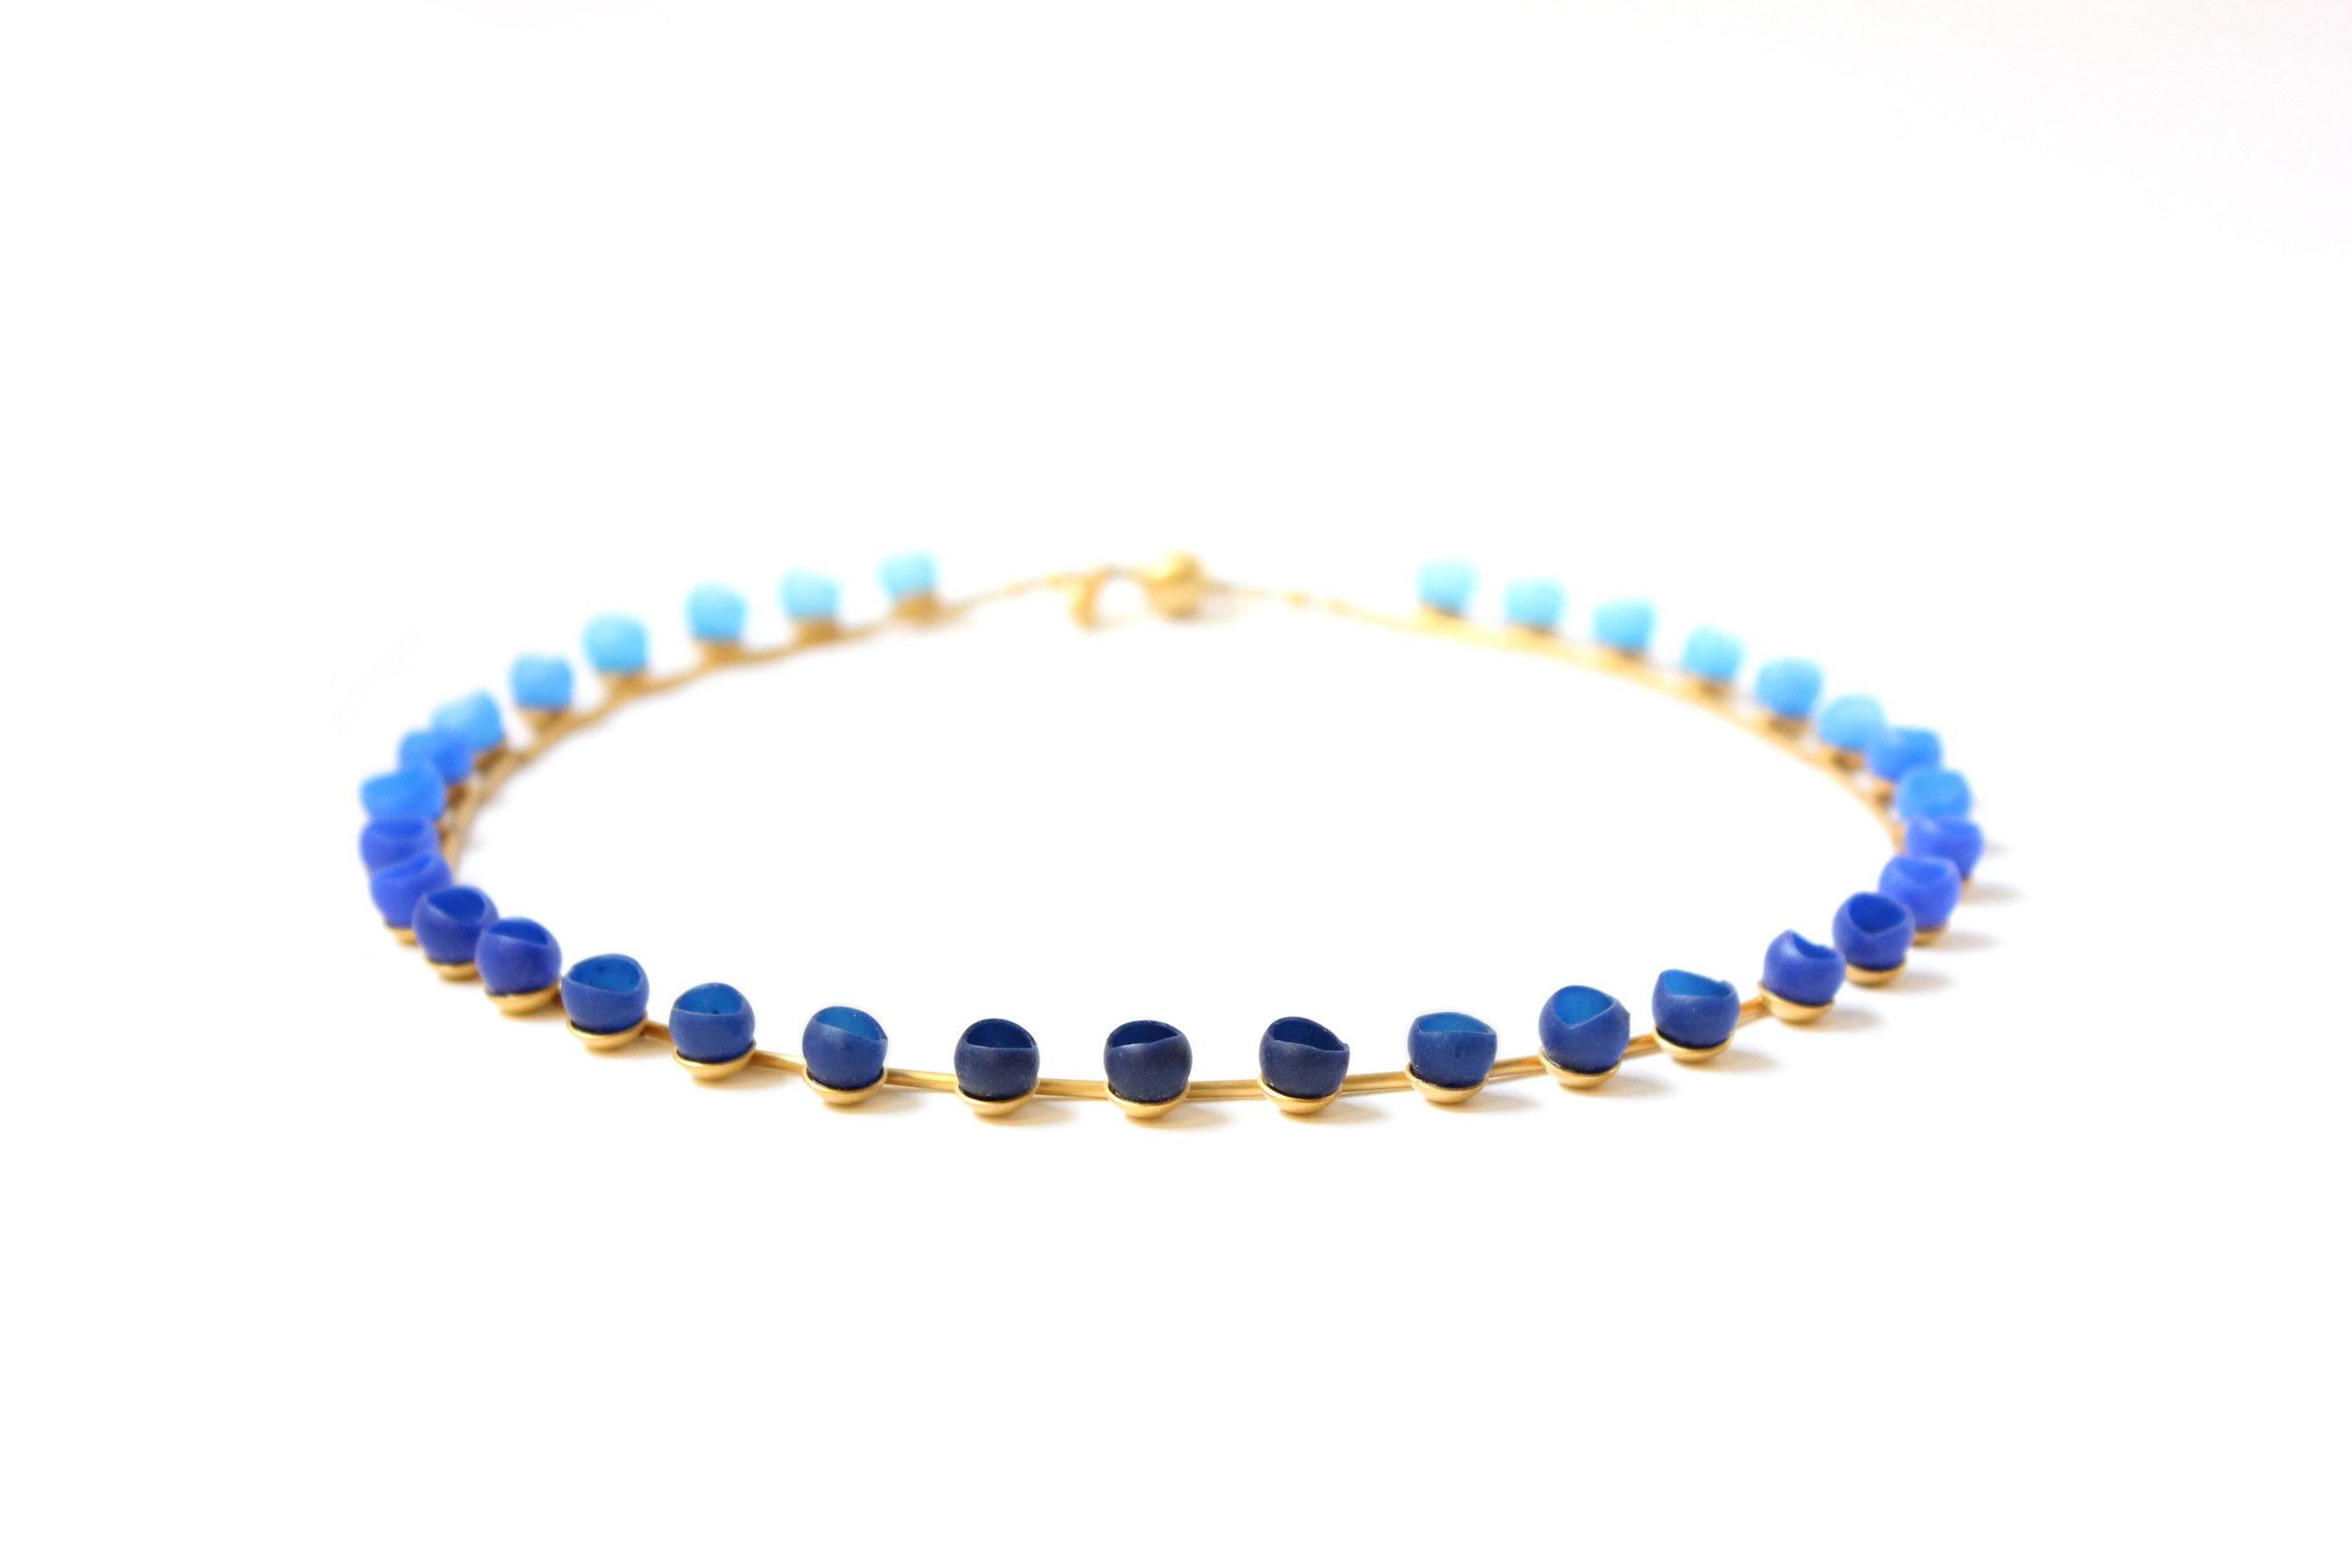 22 Jenny Llewellyn - Plume Navy Colour Fade Necklace - 300.jpg